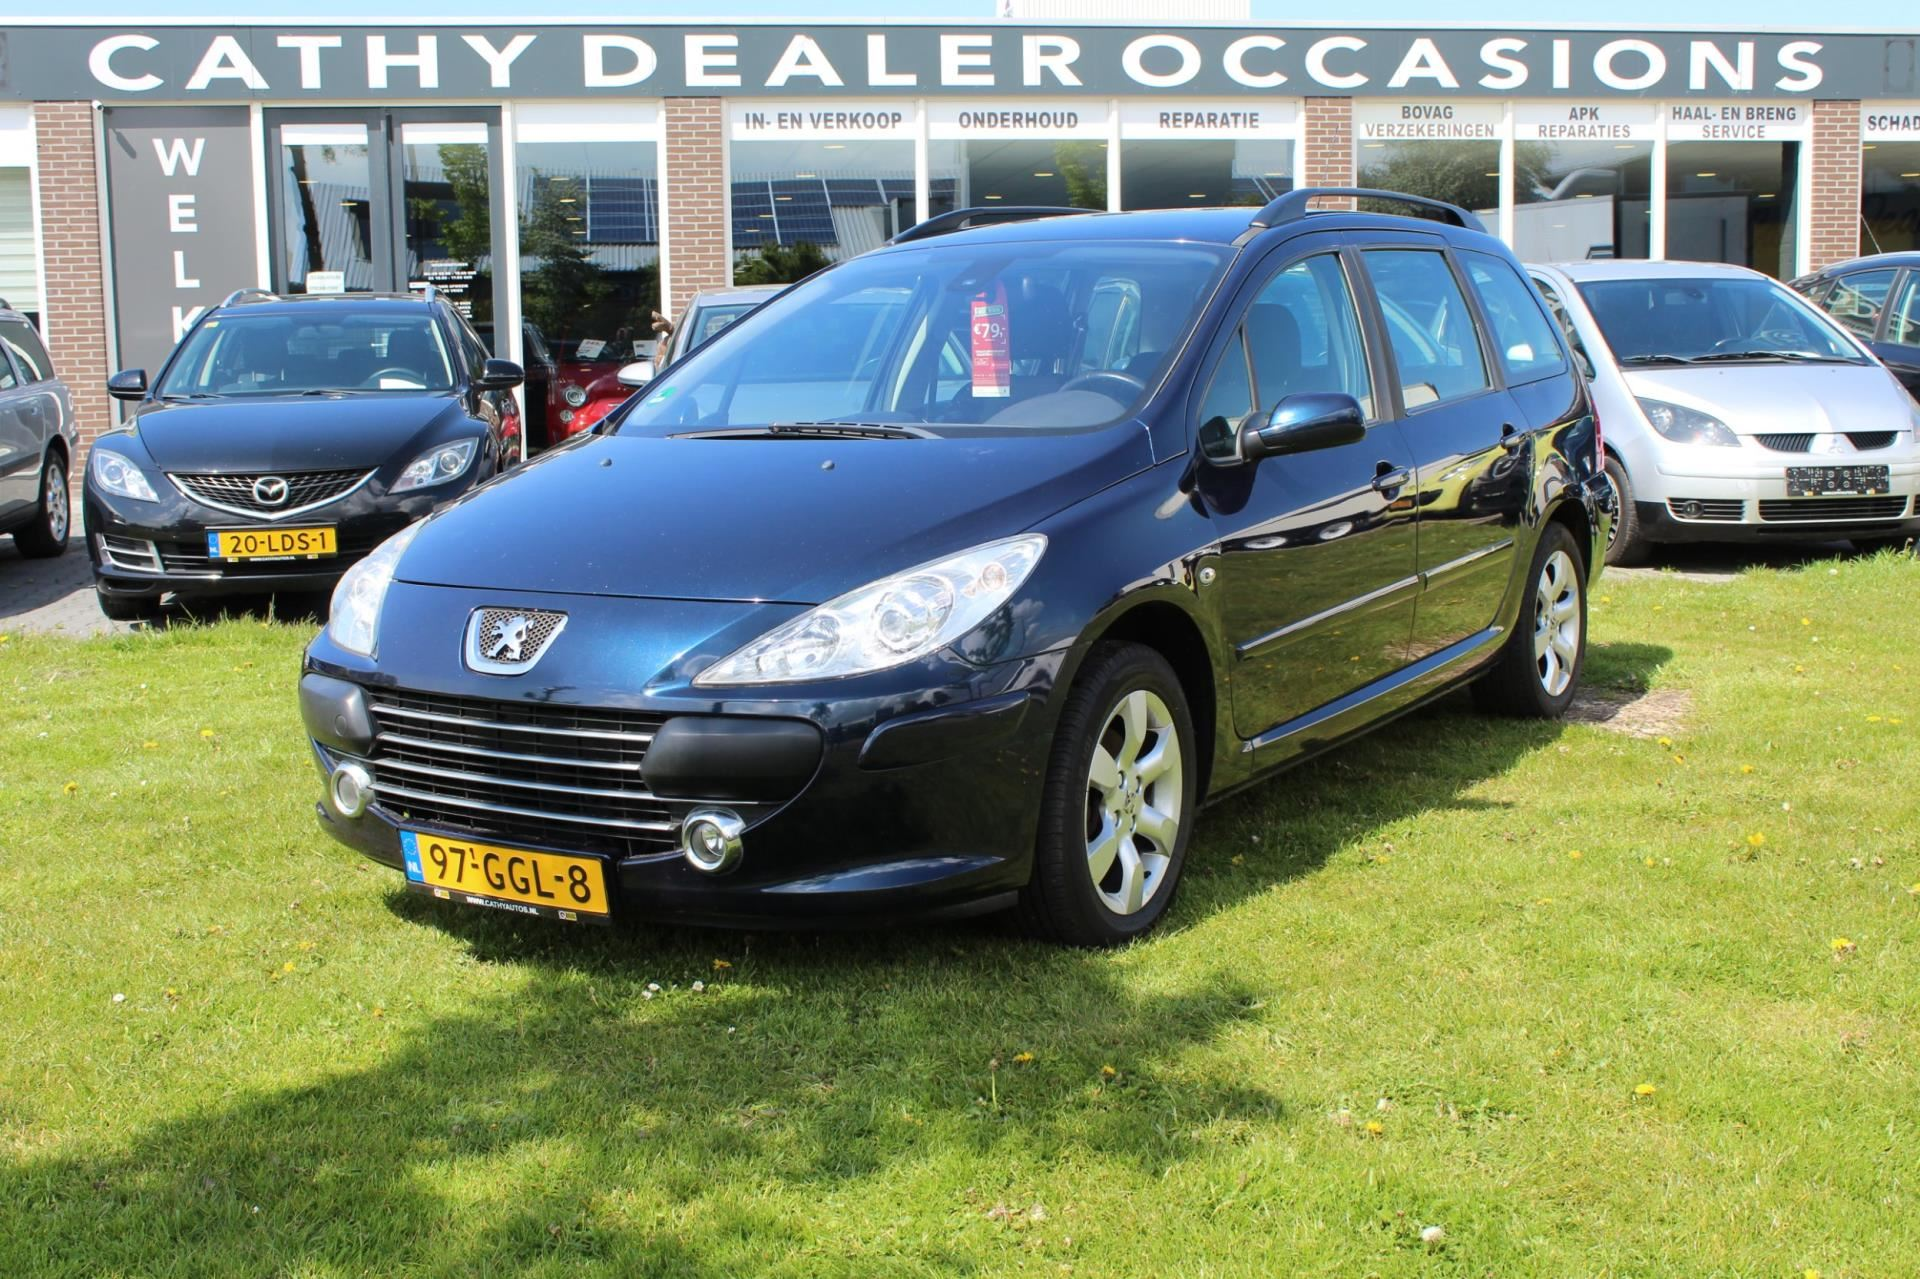 Peugeot 307 Break occasion - Cathy Dealer Occasions